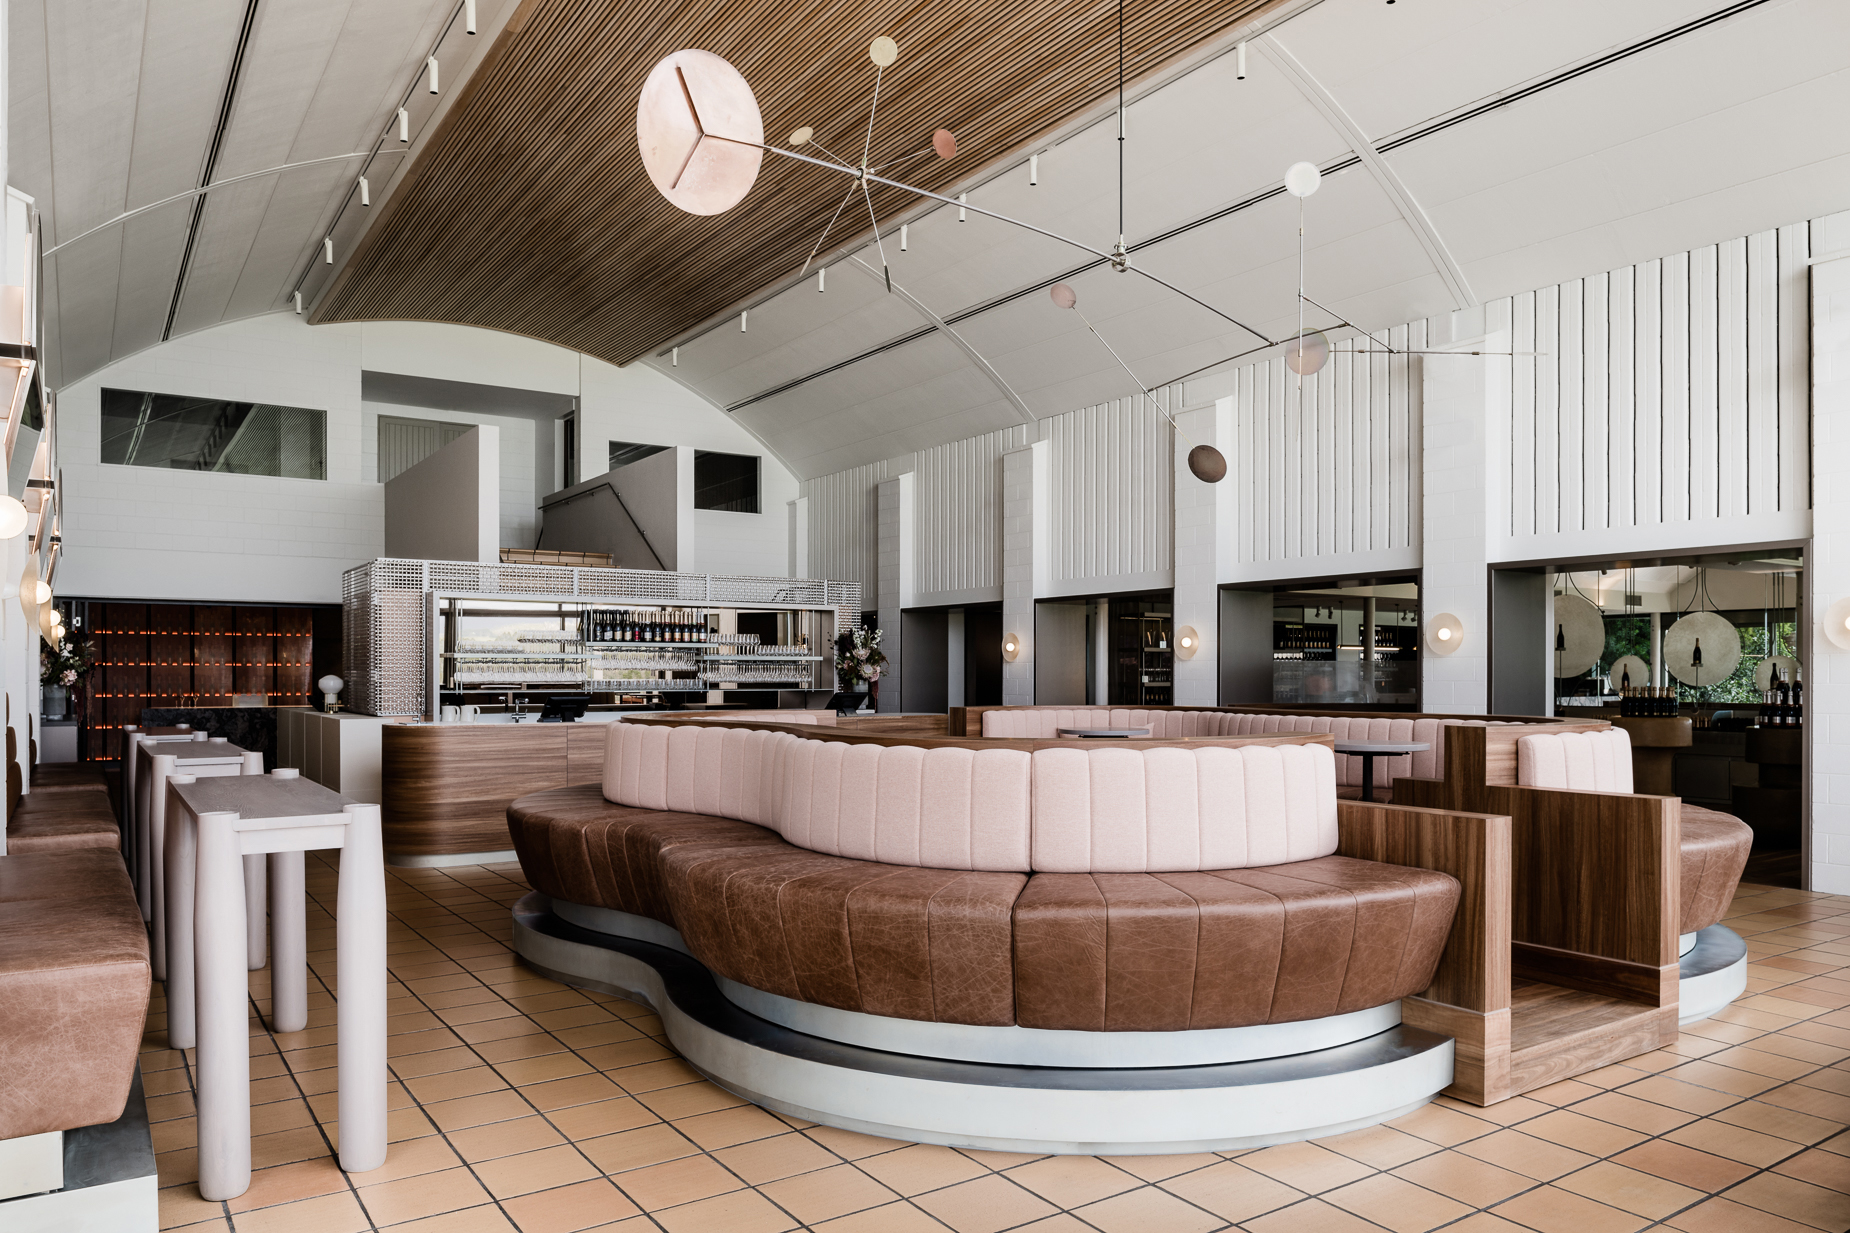 Gallery Of Chandon Australia By Foolscap Studio Local Australian Design And Interiors Yarra Valley, Vic Image 10